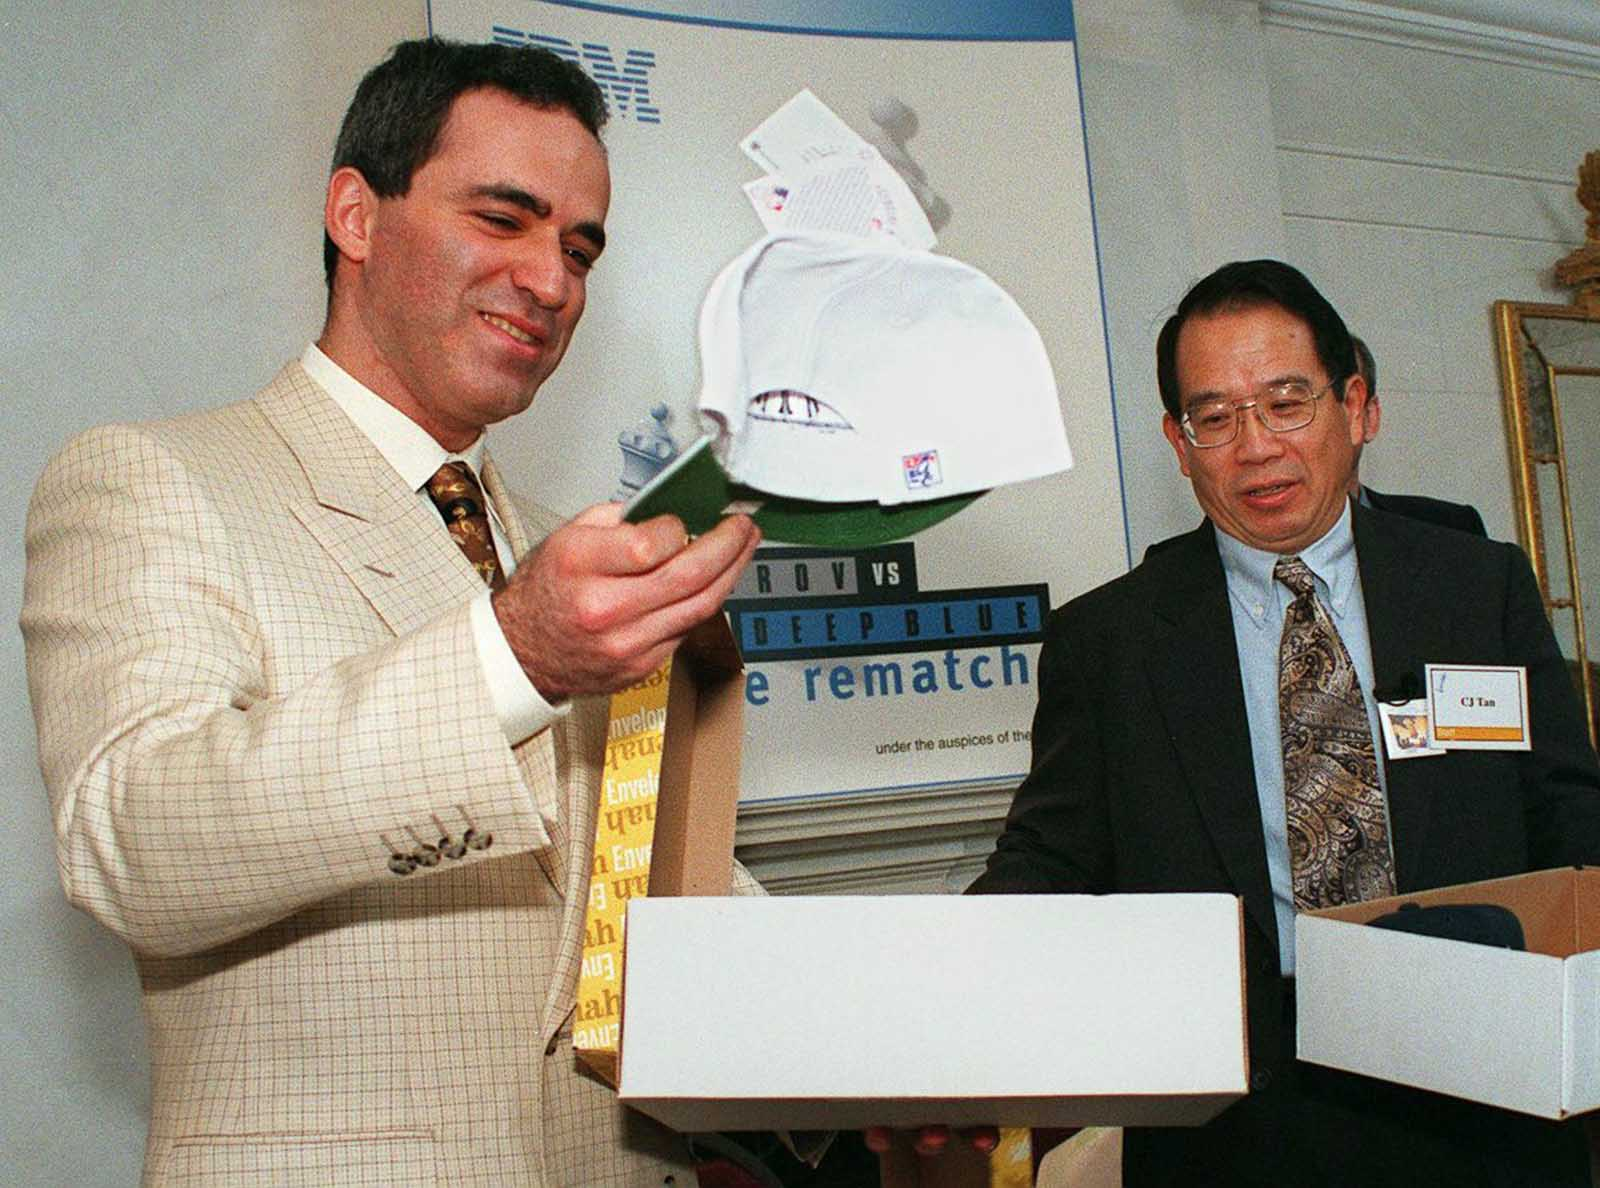 Kasparov lifts a white hat which signifies that he will have the first move in his rematch with Deep Blue.